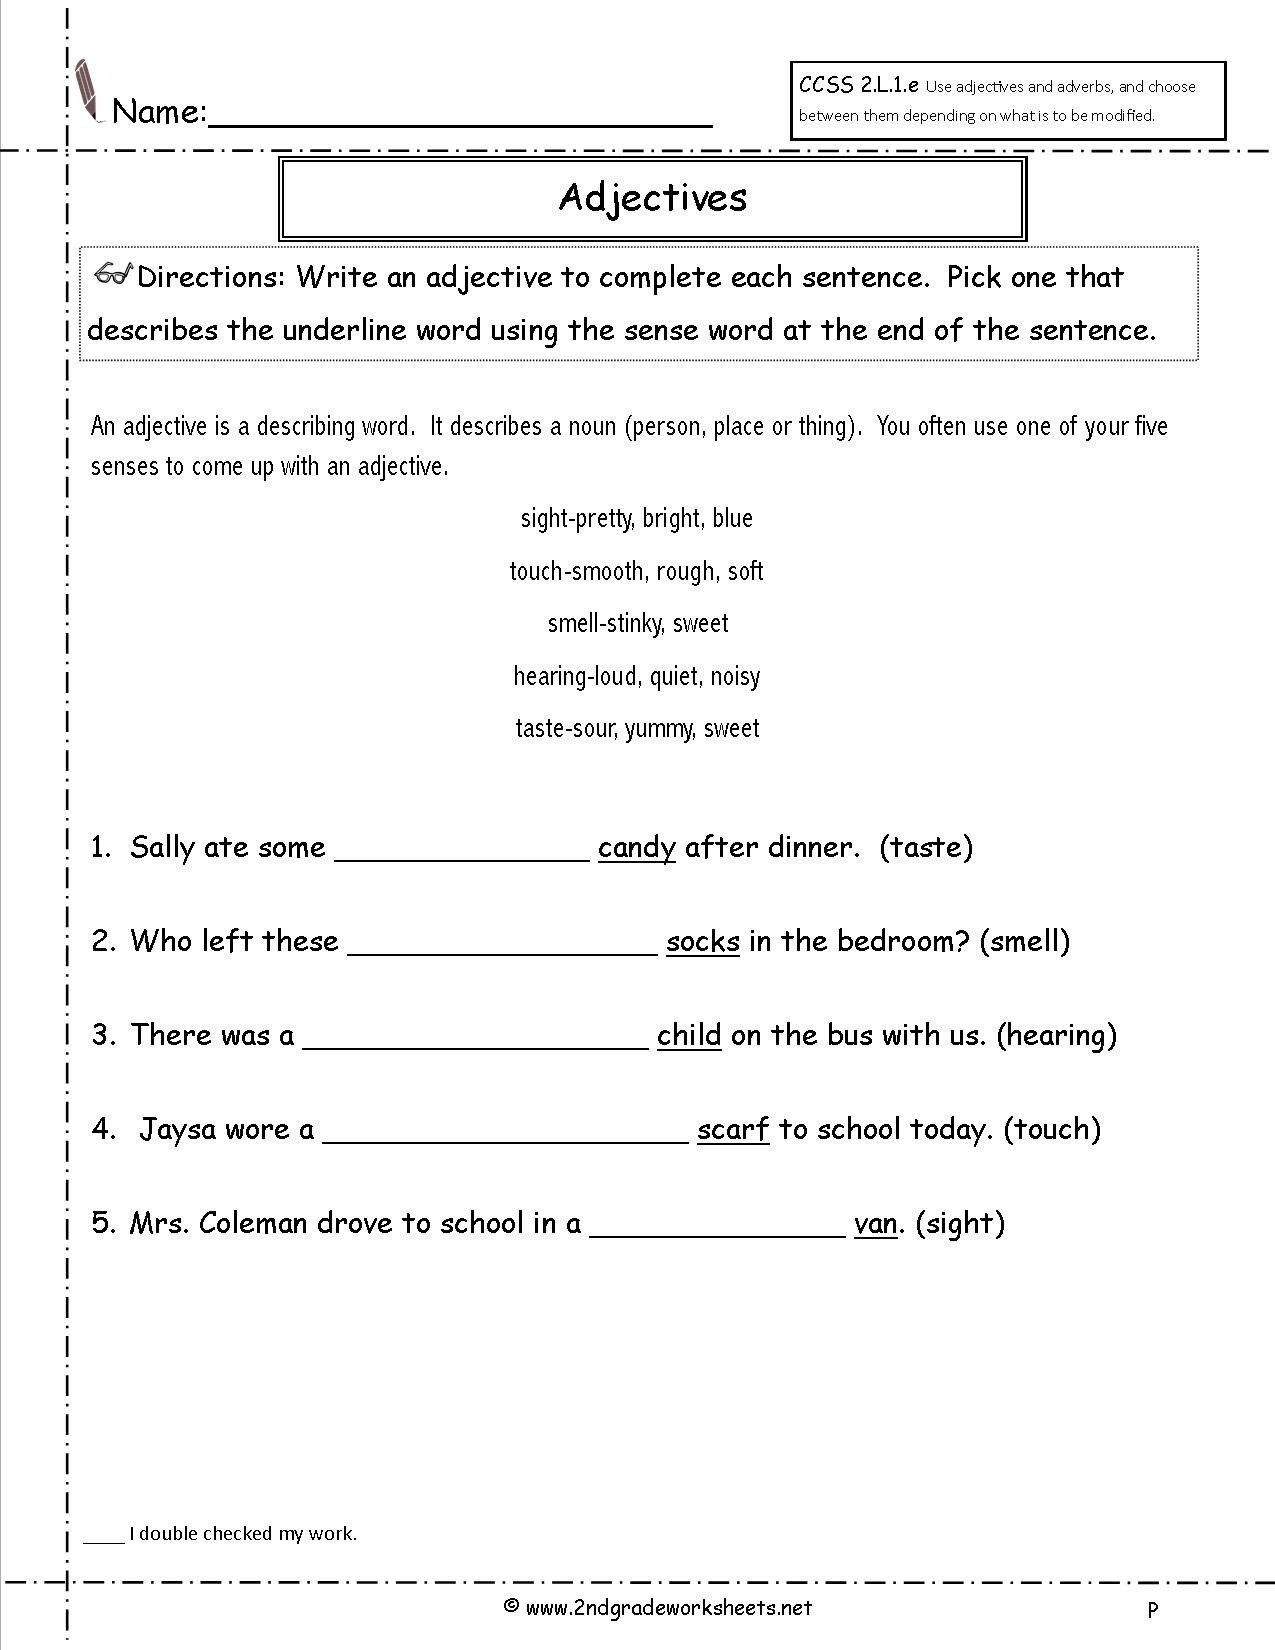 Adjective Worksheets 2nd Grade Geometry Practice Problems My School Printable Worksheets